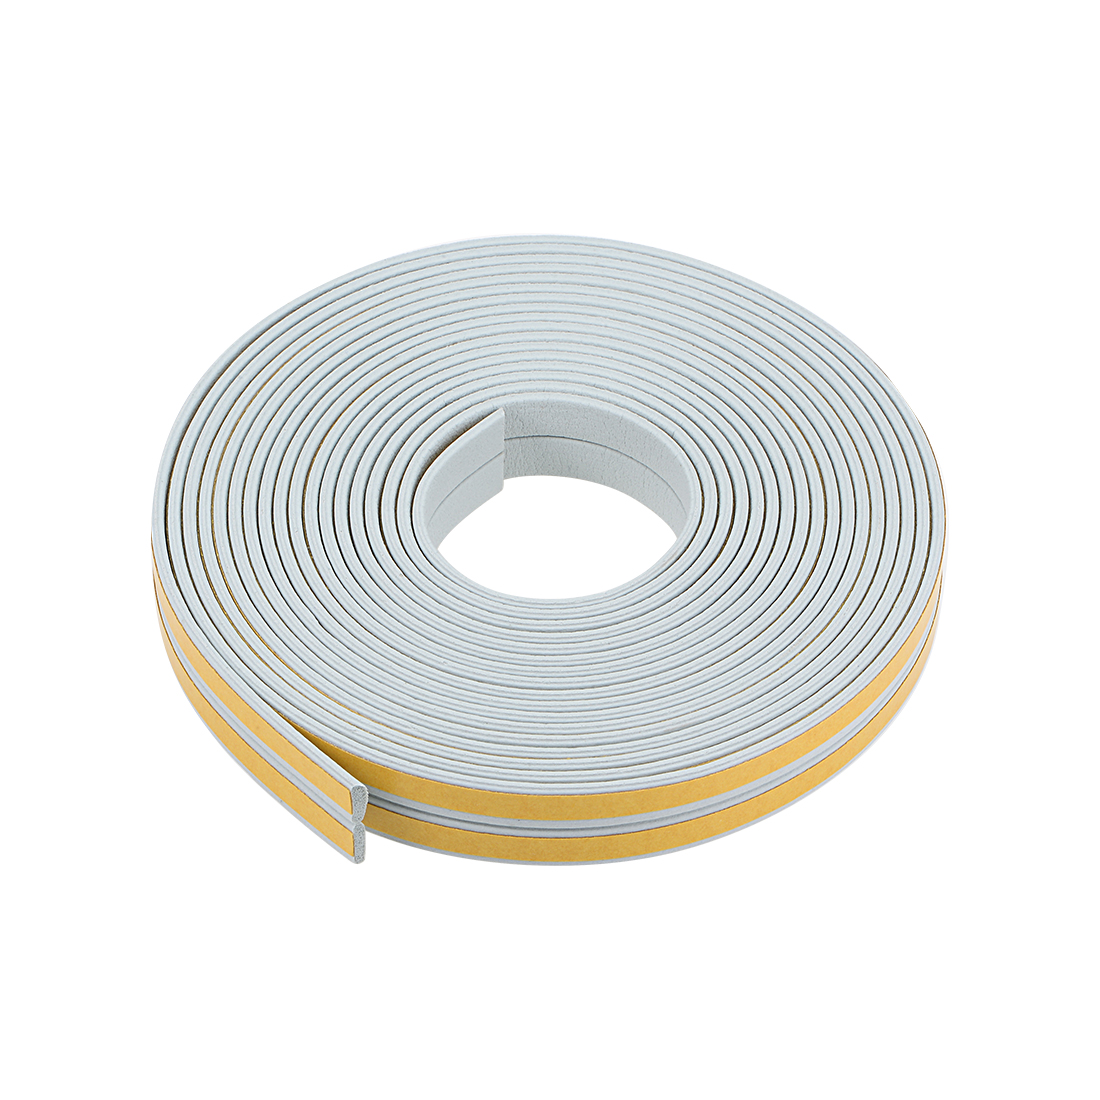 Foam Tape Adhesive 9mm Wide 2mm Thick, Total 32.8 Feet Gray 2Pcs